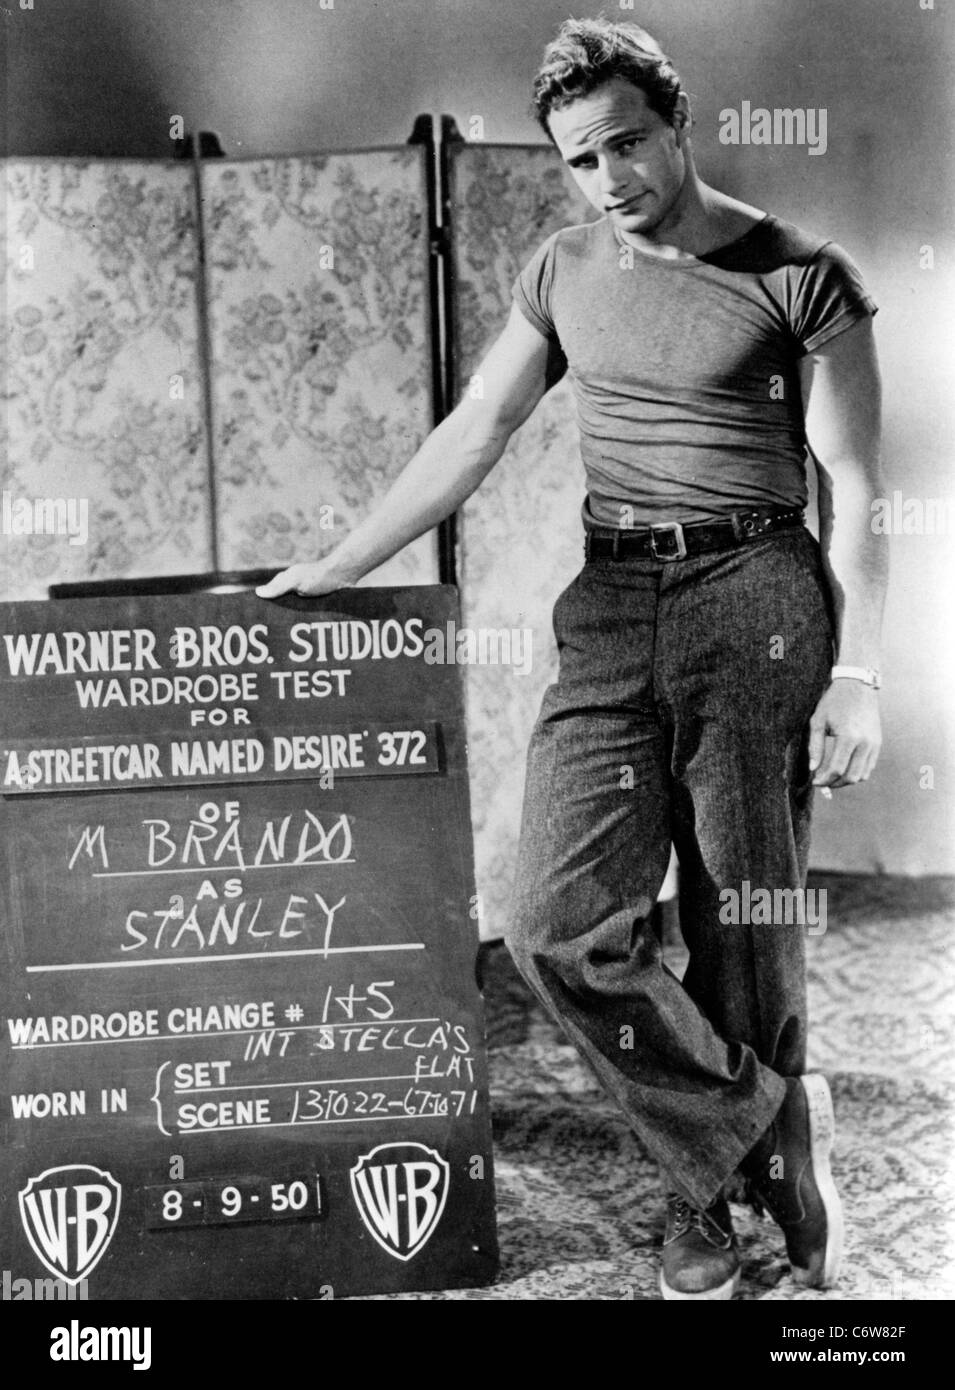 a streetcar named desire stanley character profile